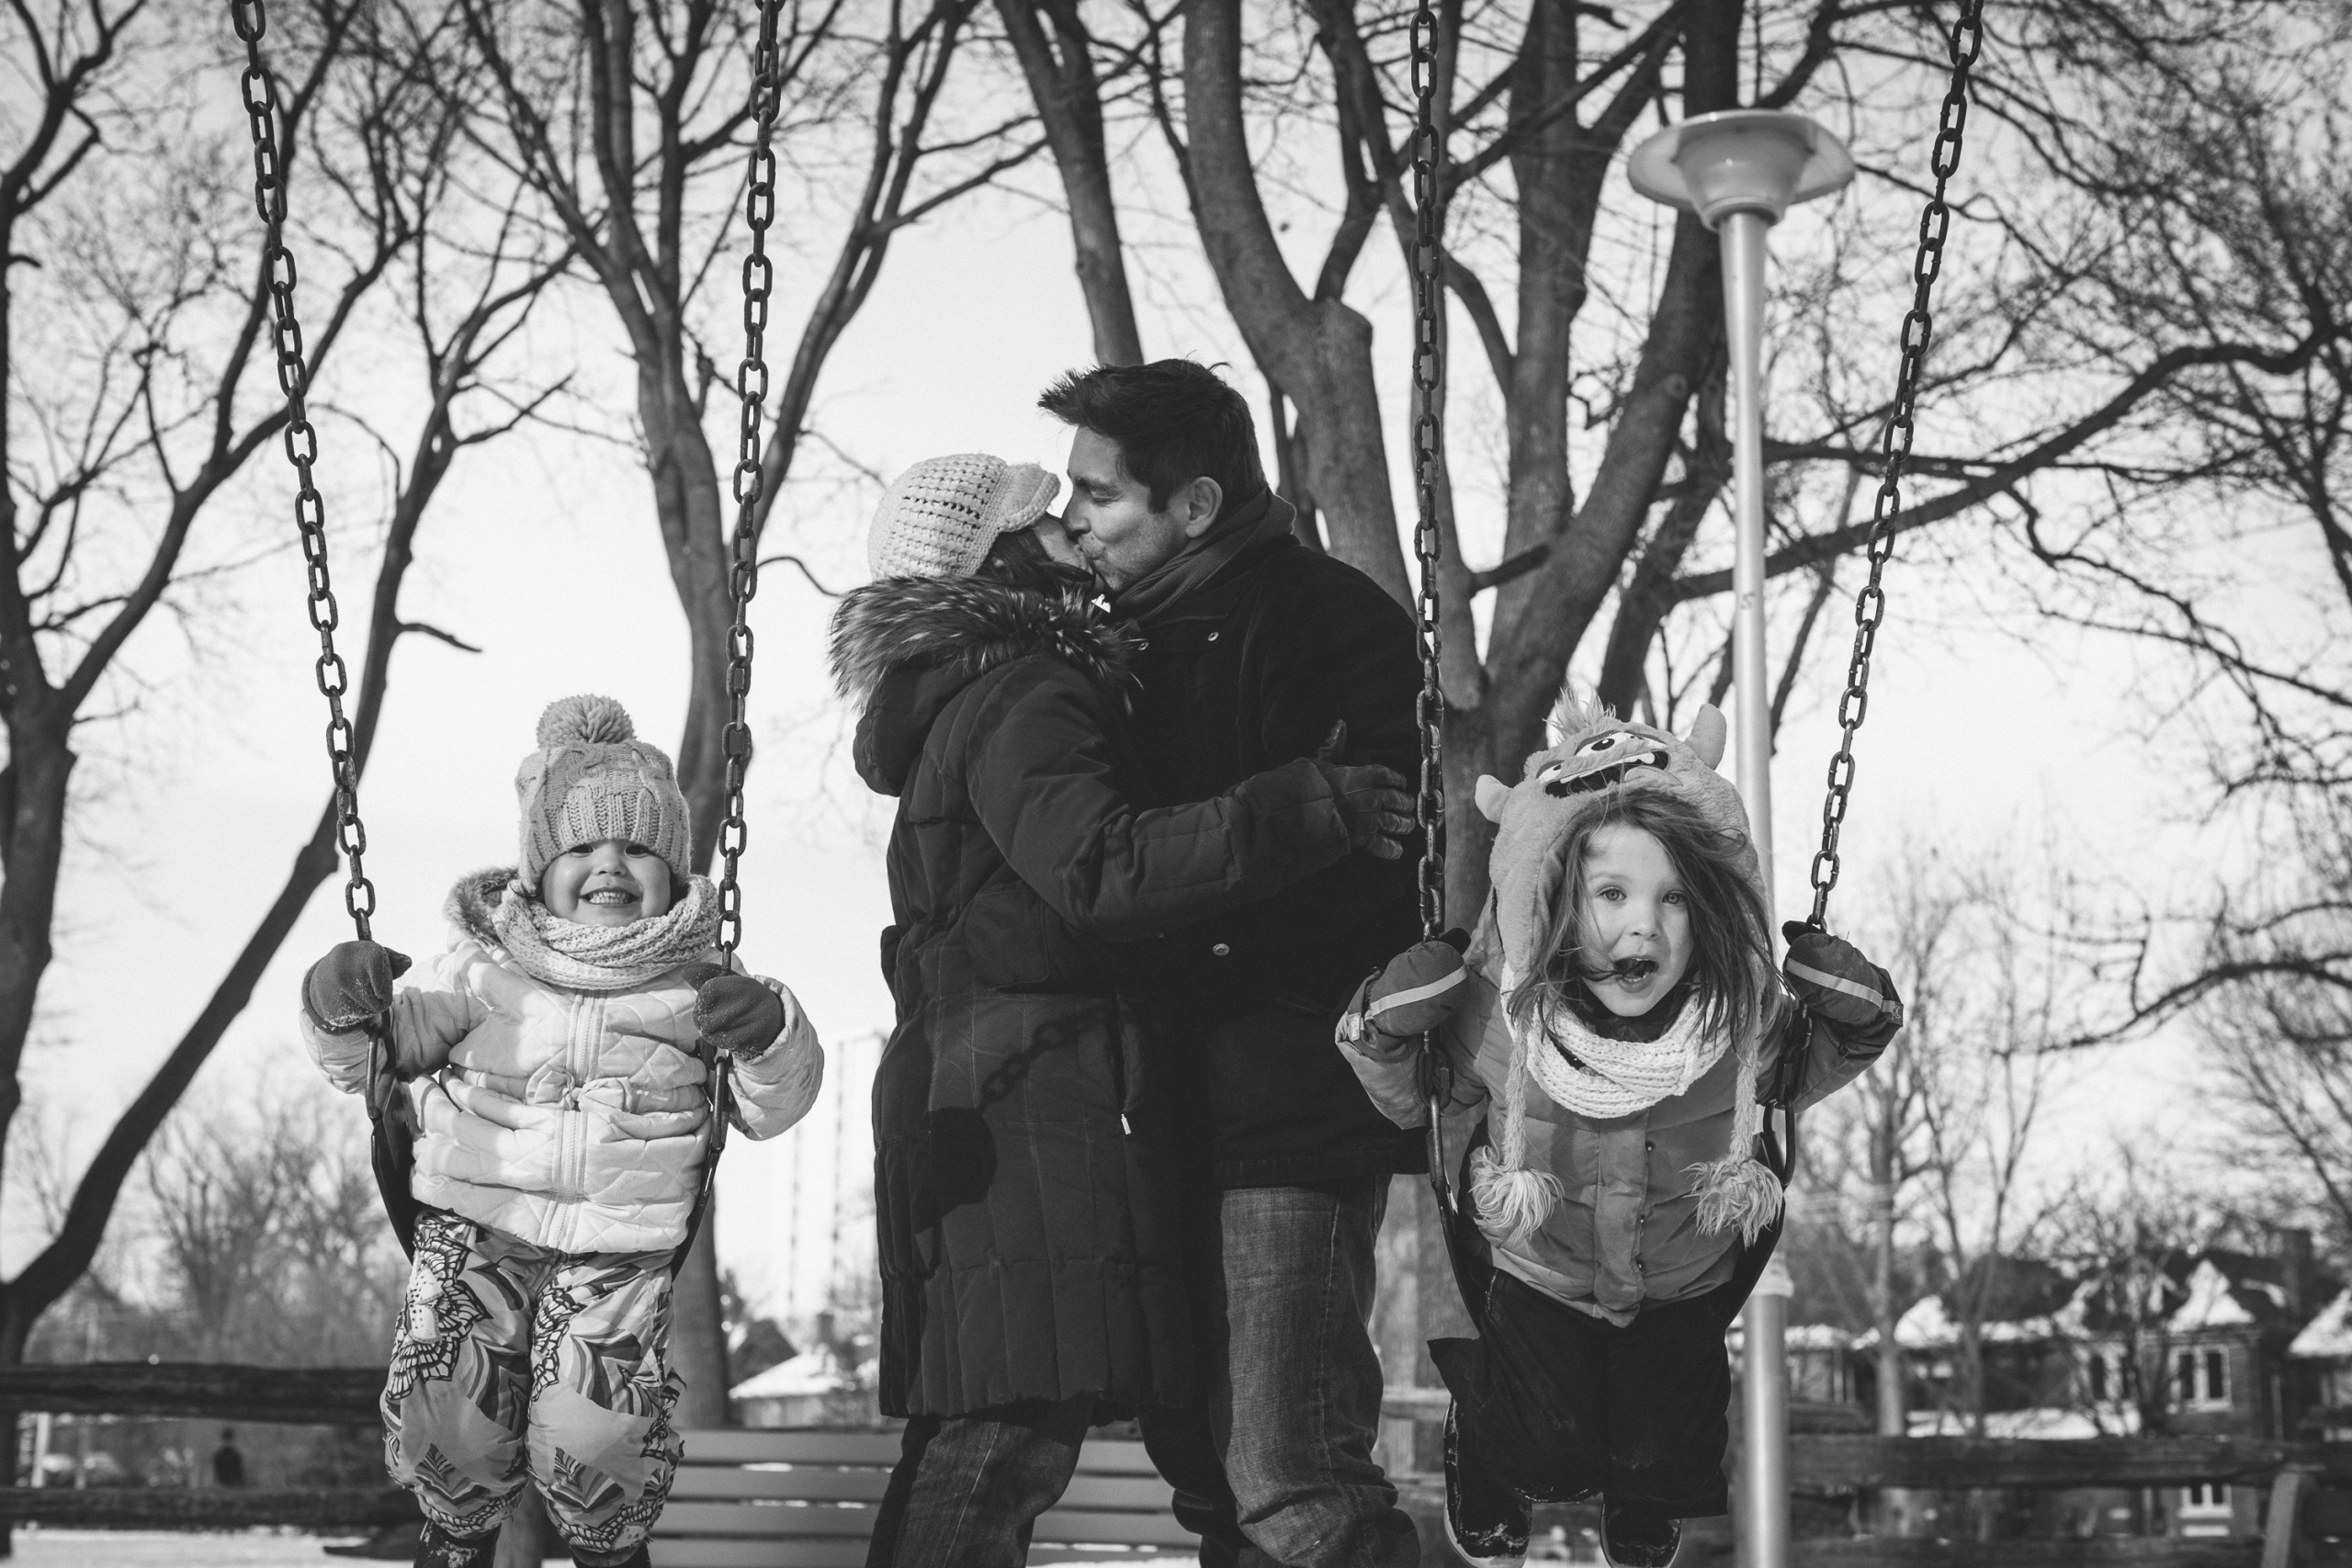 Colin Boyd Shafer, Jessica and Mark Embracing in Toronto's Dufferin Grove Park, 2015